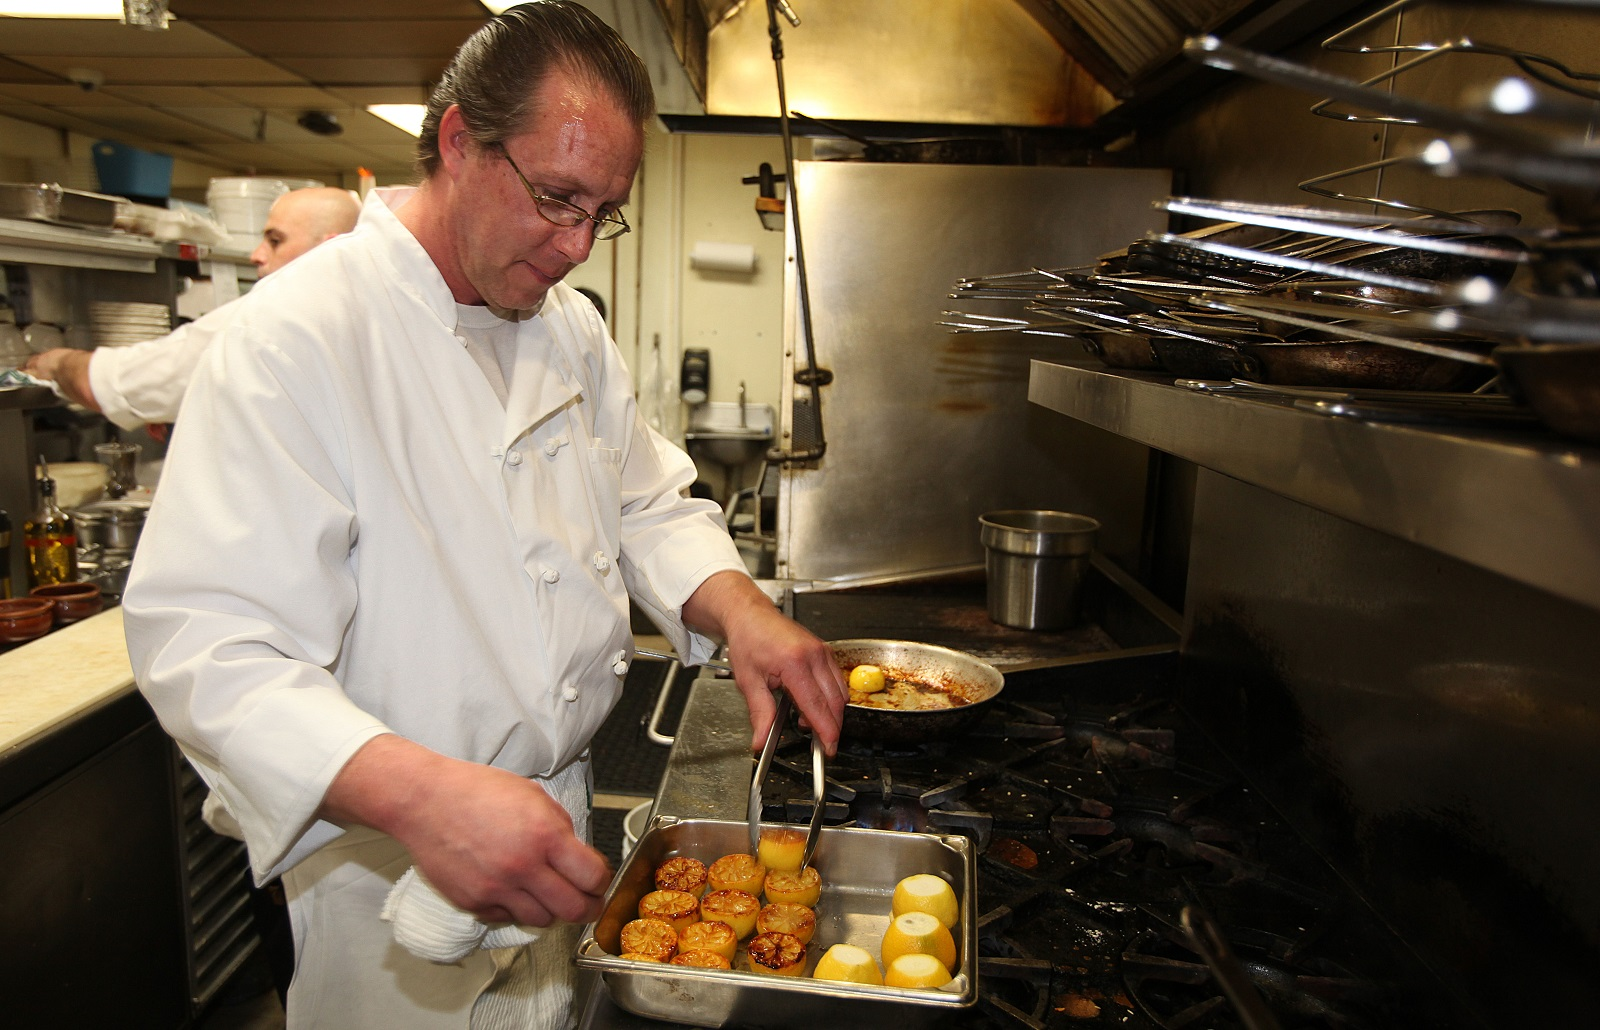 Saute Chef Daryl Rogowski caramelizes lemons in the kitchen at Protocol Restaurant. (Buffalo News file photo)